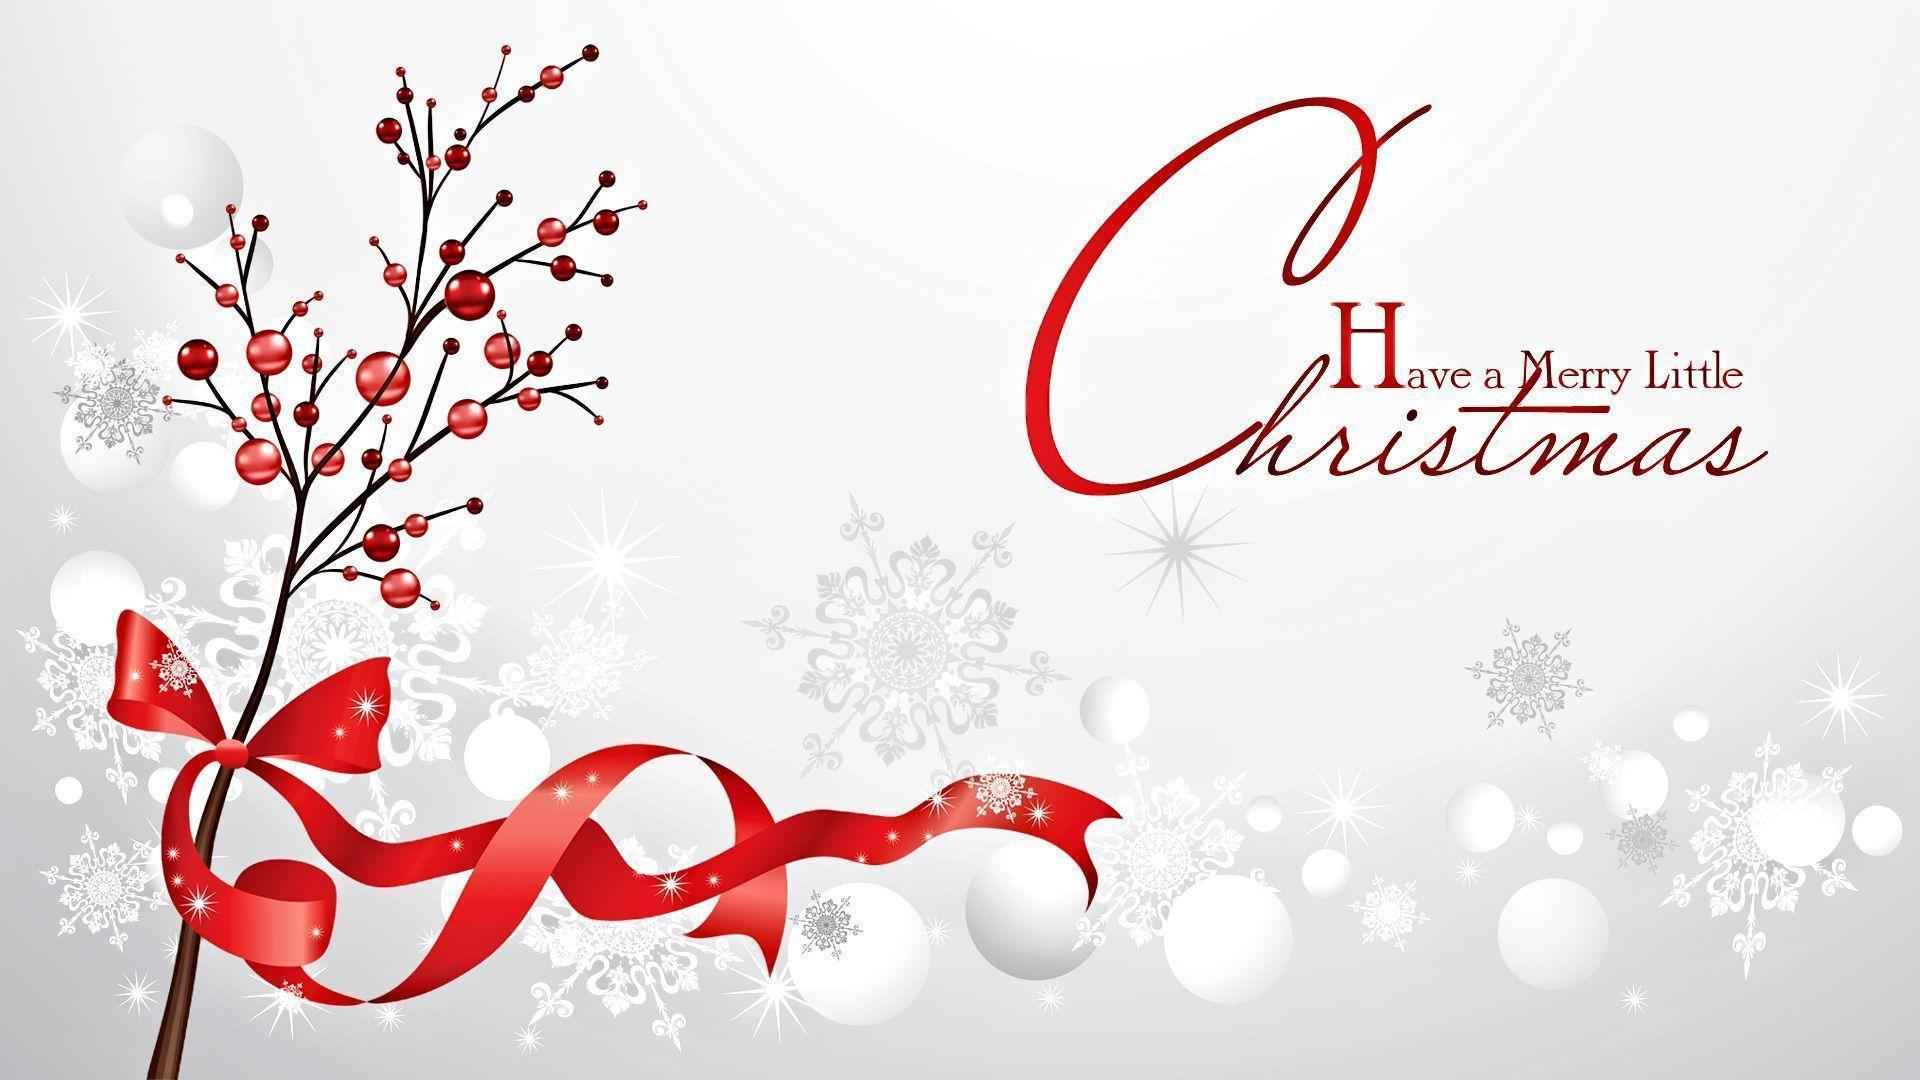 Merry Christmas 2017 Wallpapers - Wallpaper Cave